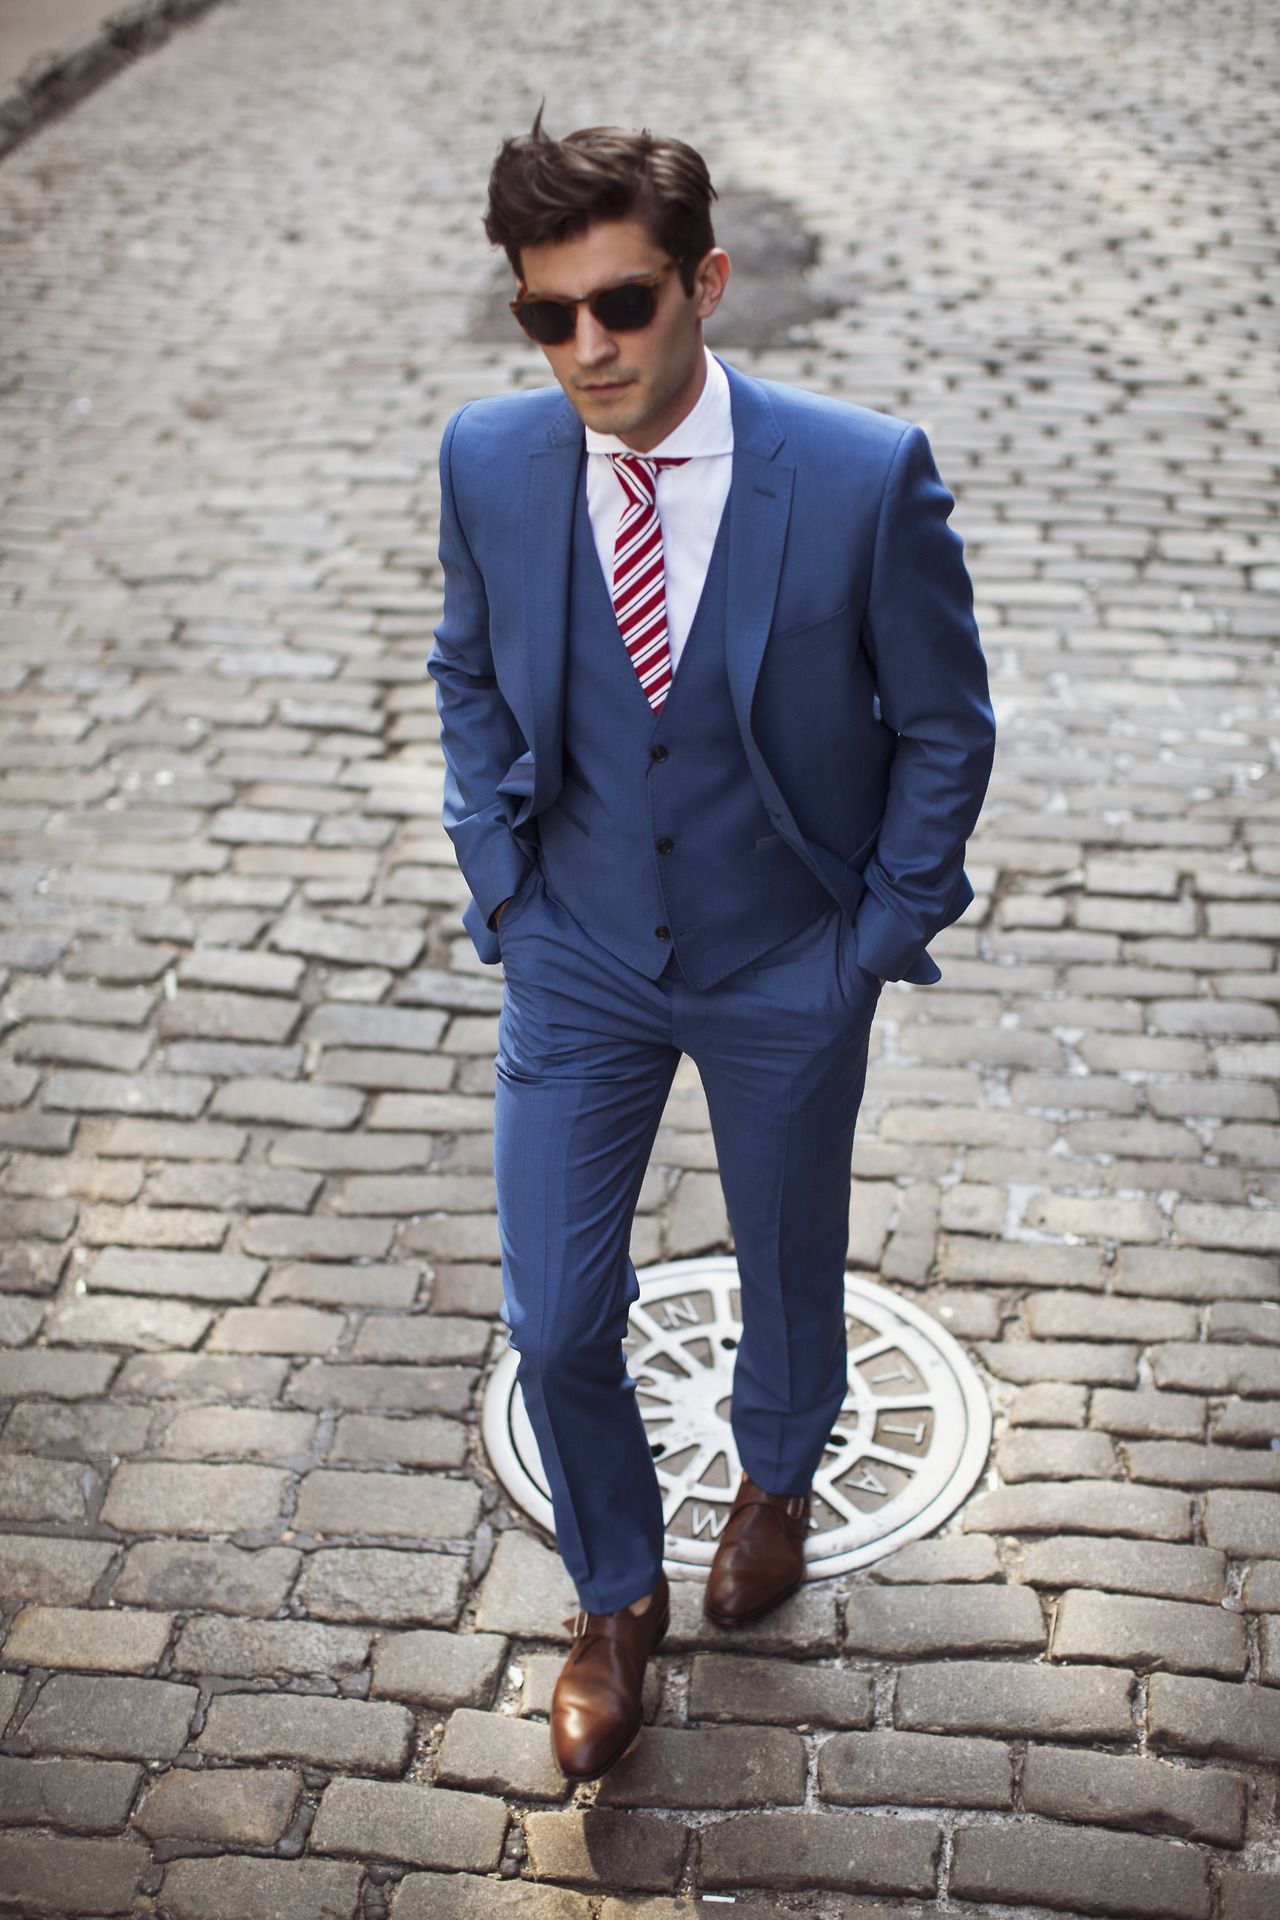 Wedding Suits For Men Inspiration For Male | Summer, Summer suits